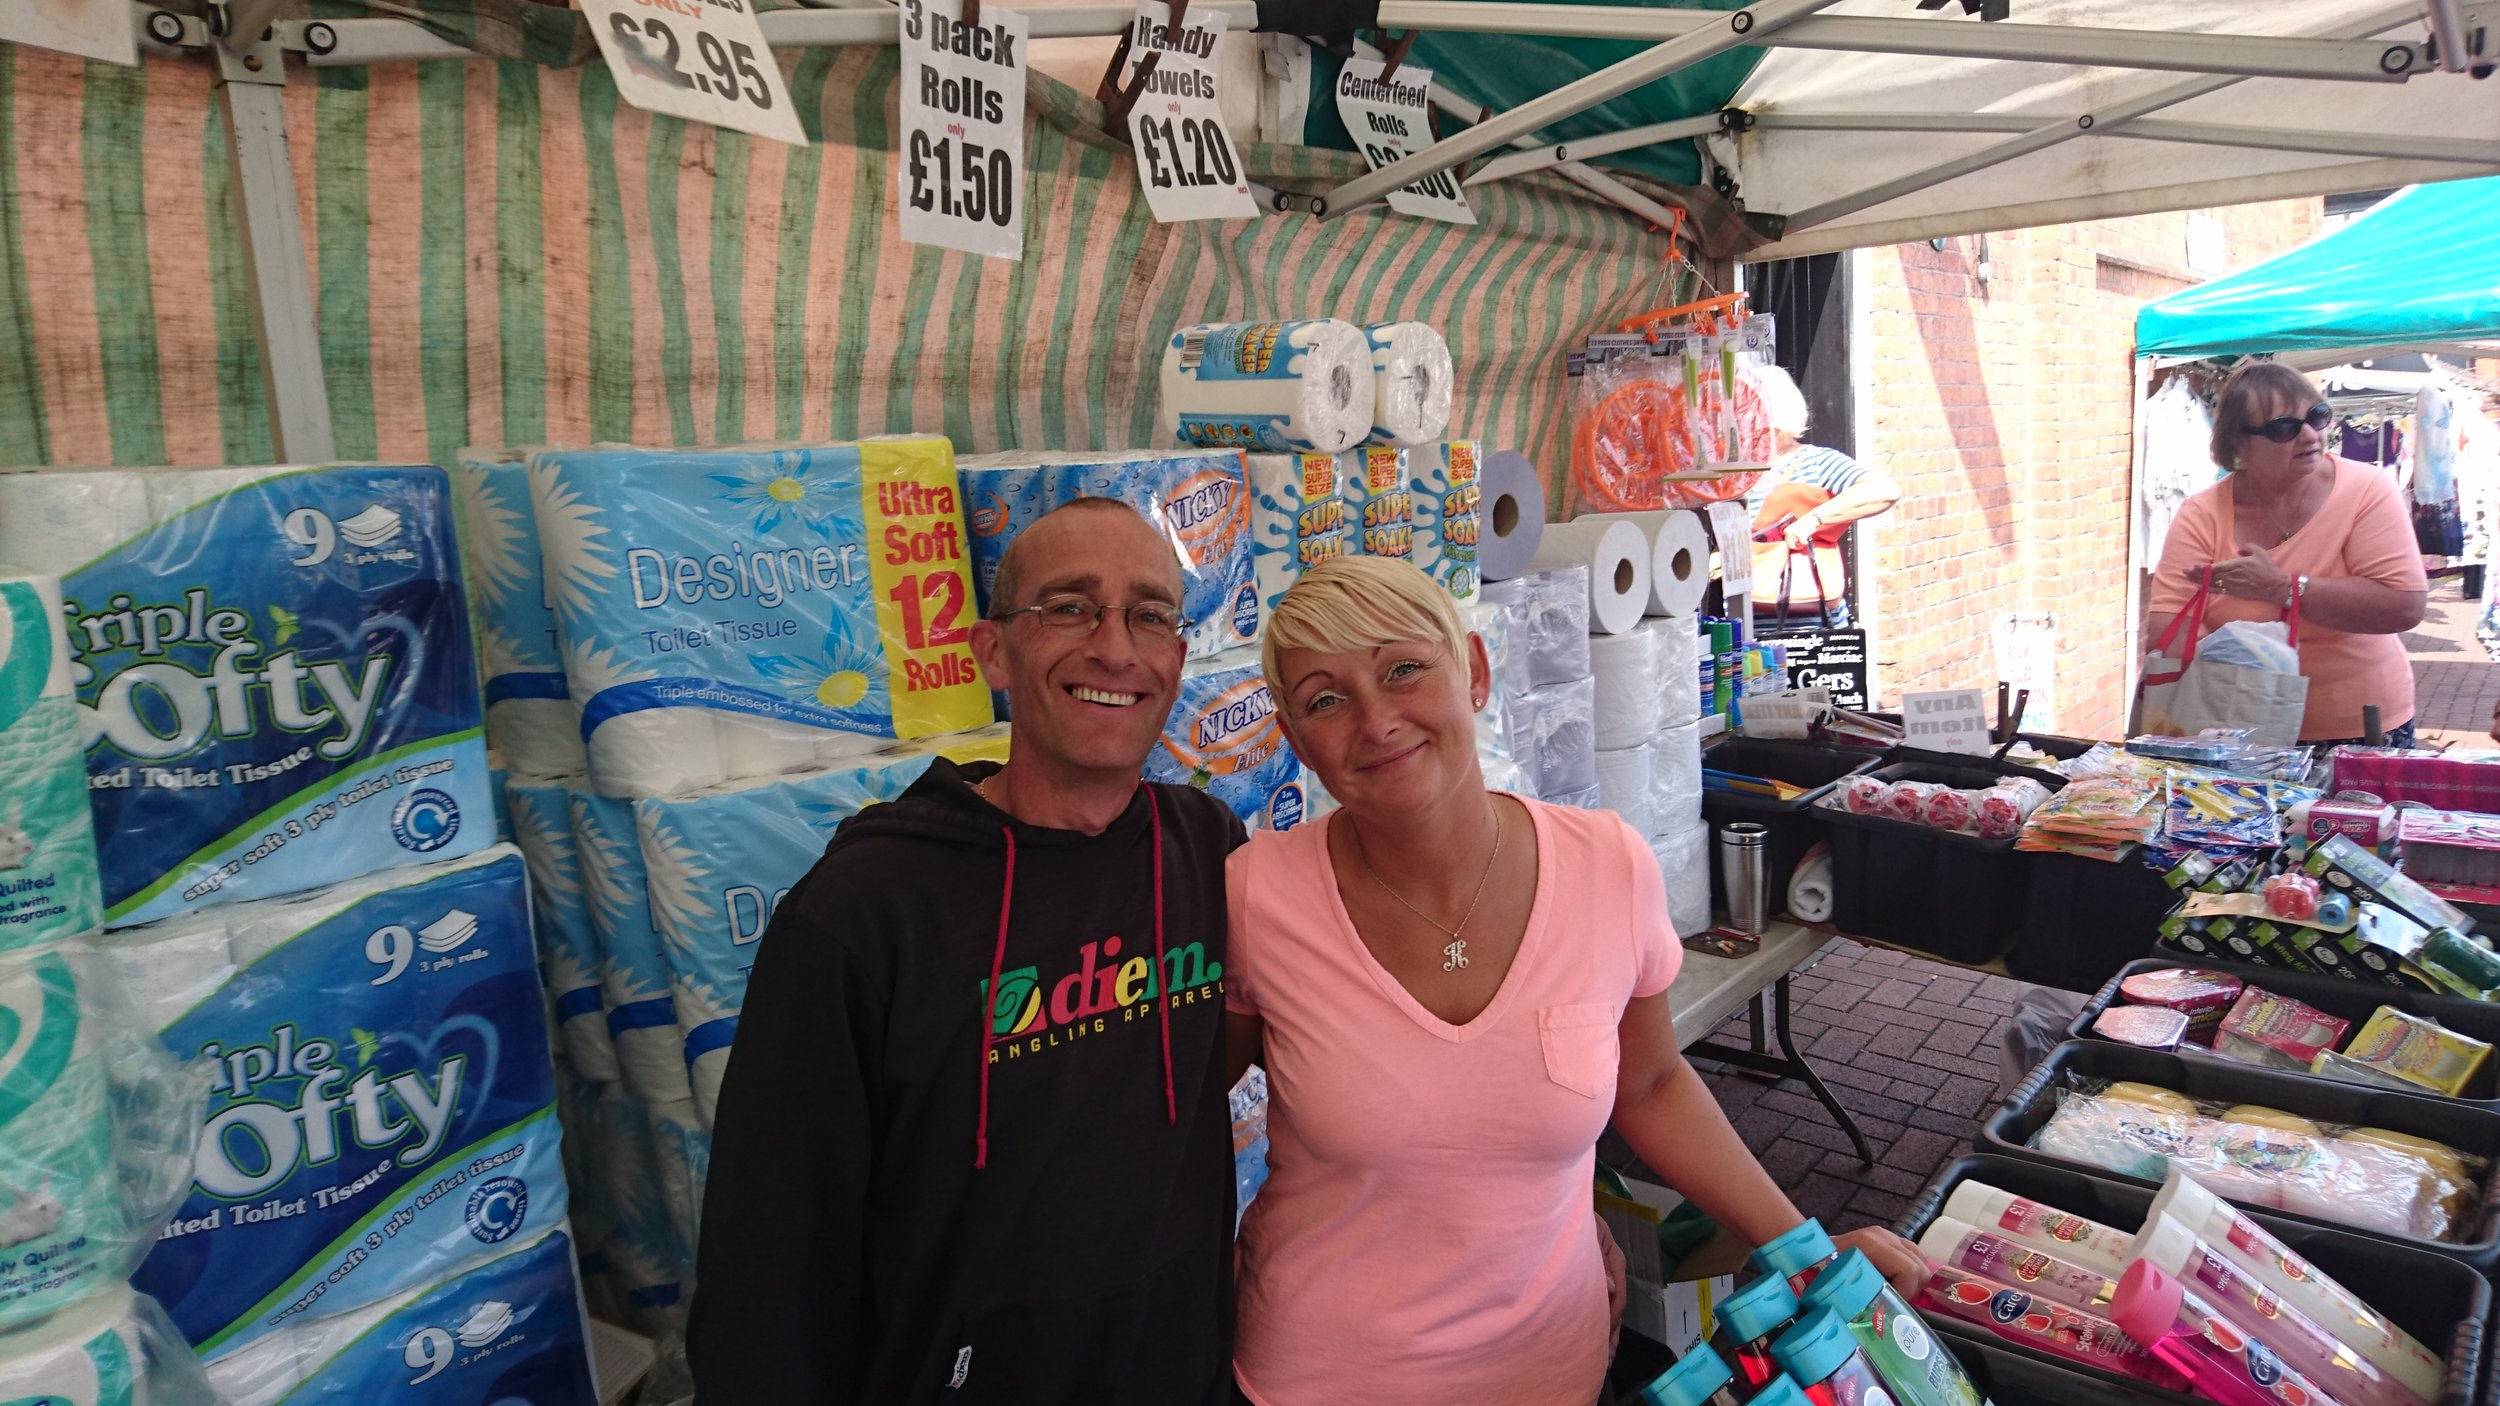 AJ & SM - Location: Outdoor MarketTrading: ThursdayContact: tony01270yahoo.co.ukHousehold toiletries and seasonal goods at affordable prices.